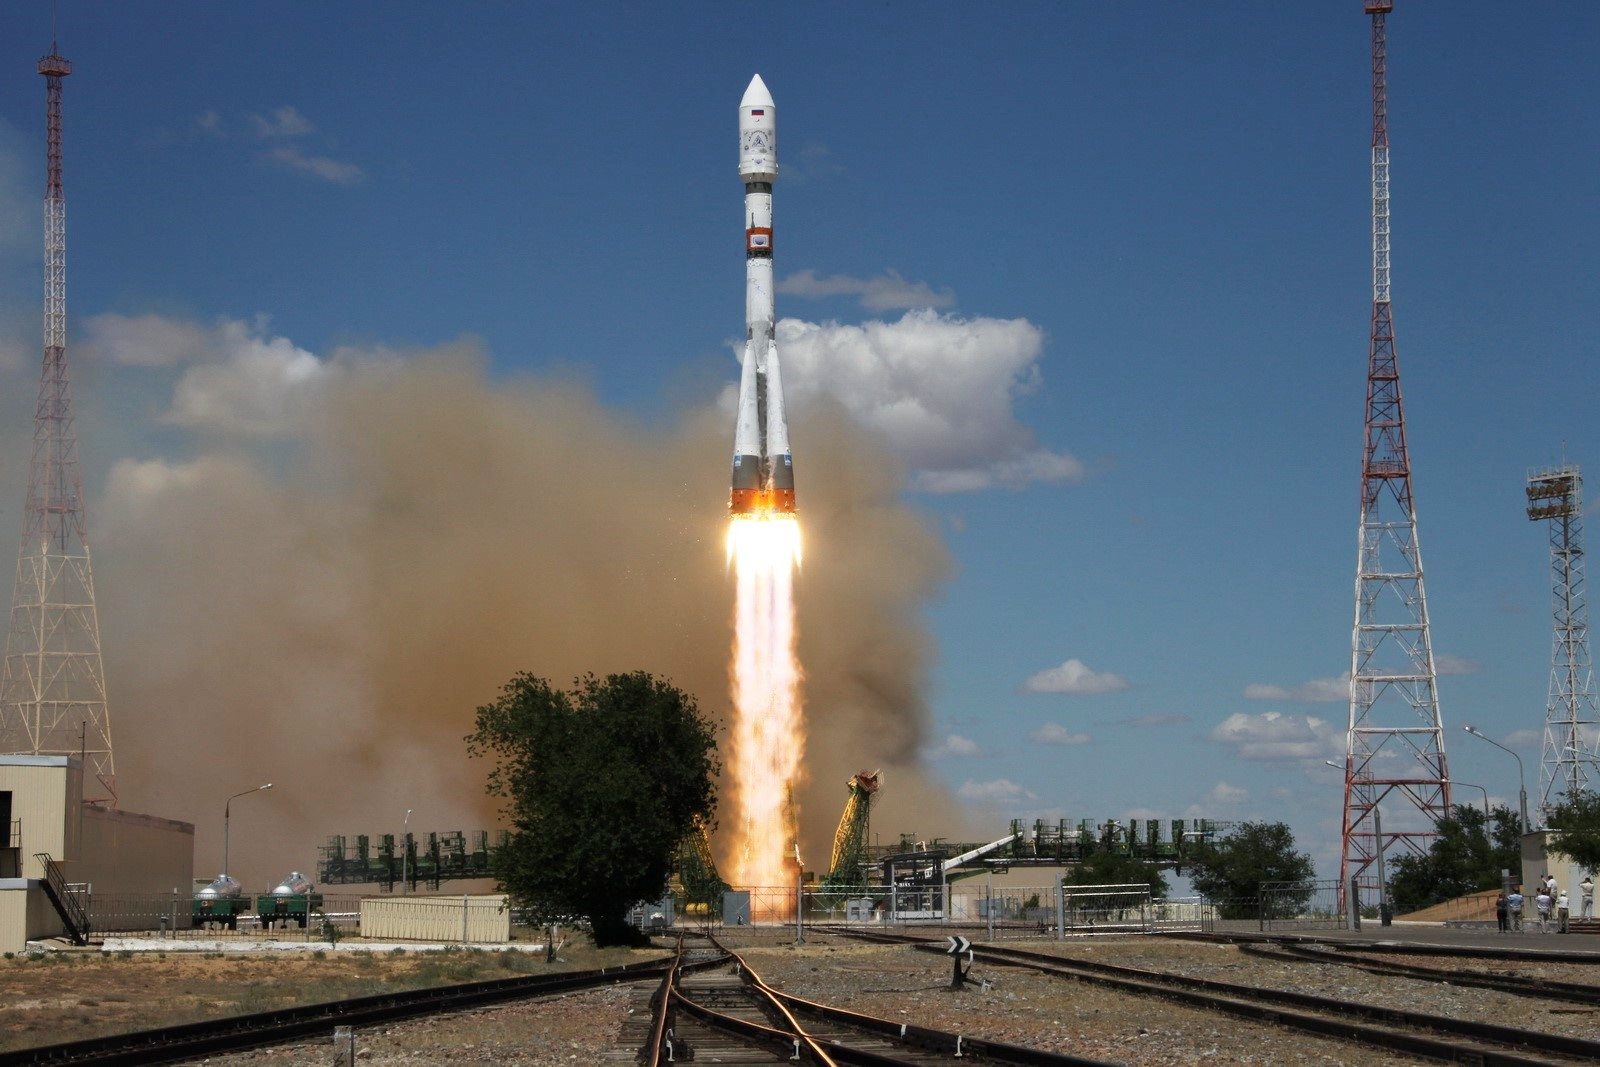 A file photo of a Soyuz-2.1a rocket launching an earlier set of Kanopus satellites (from the Baikonur Cosmodrome). Photo Credit: Roscosmos